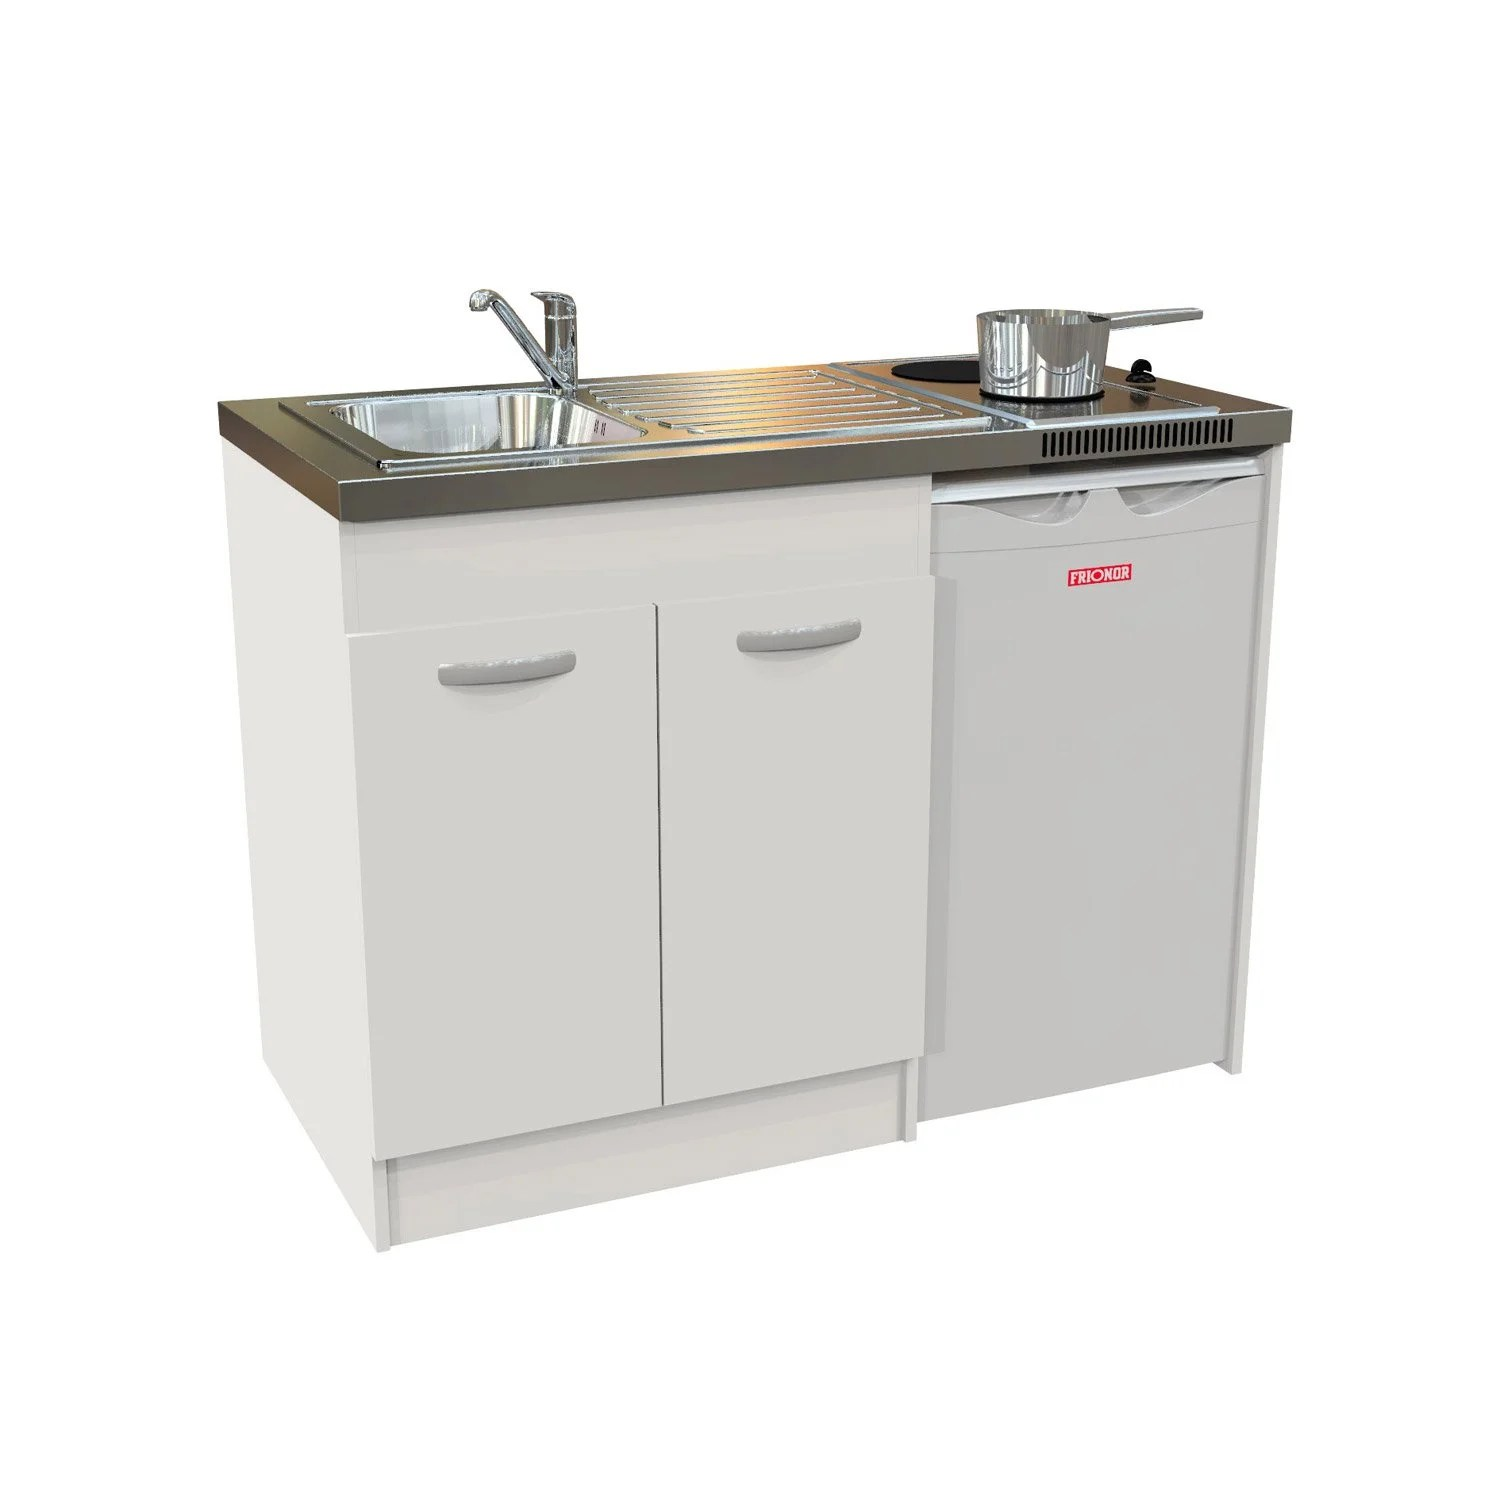 Spa Exterieur Castorama Kitchenette Conforama